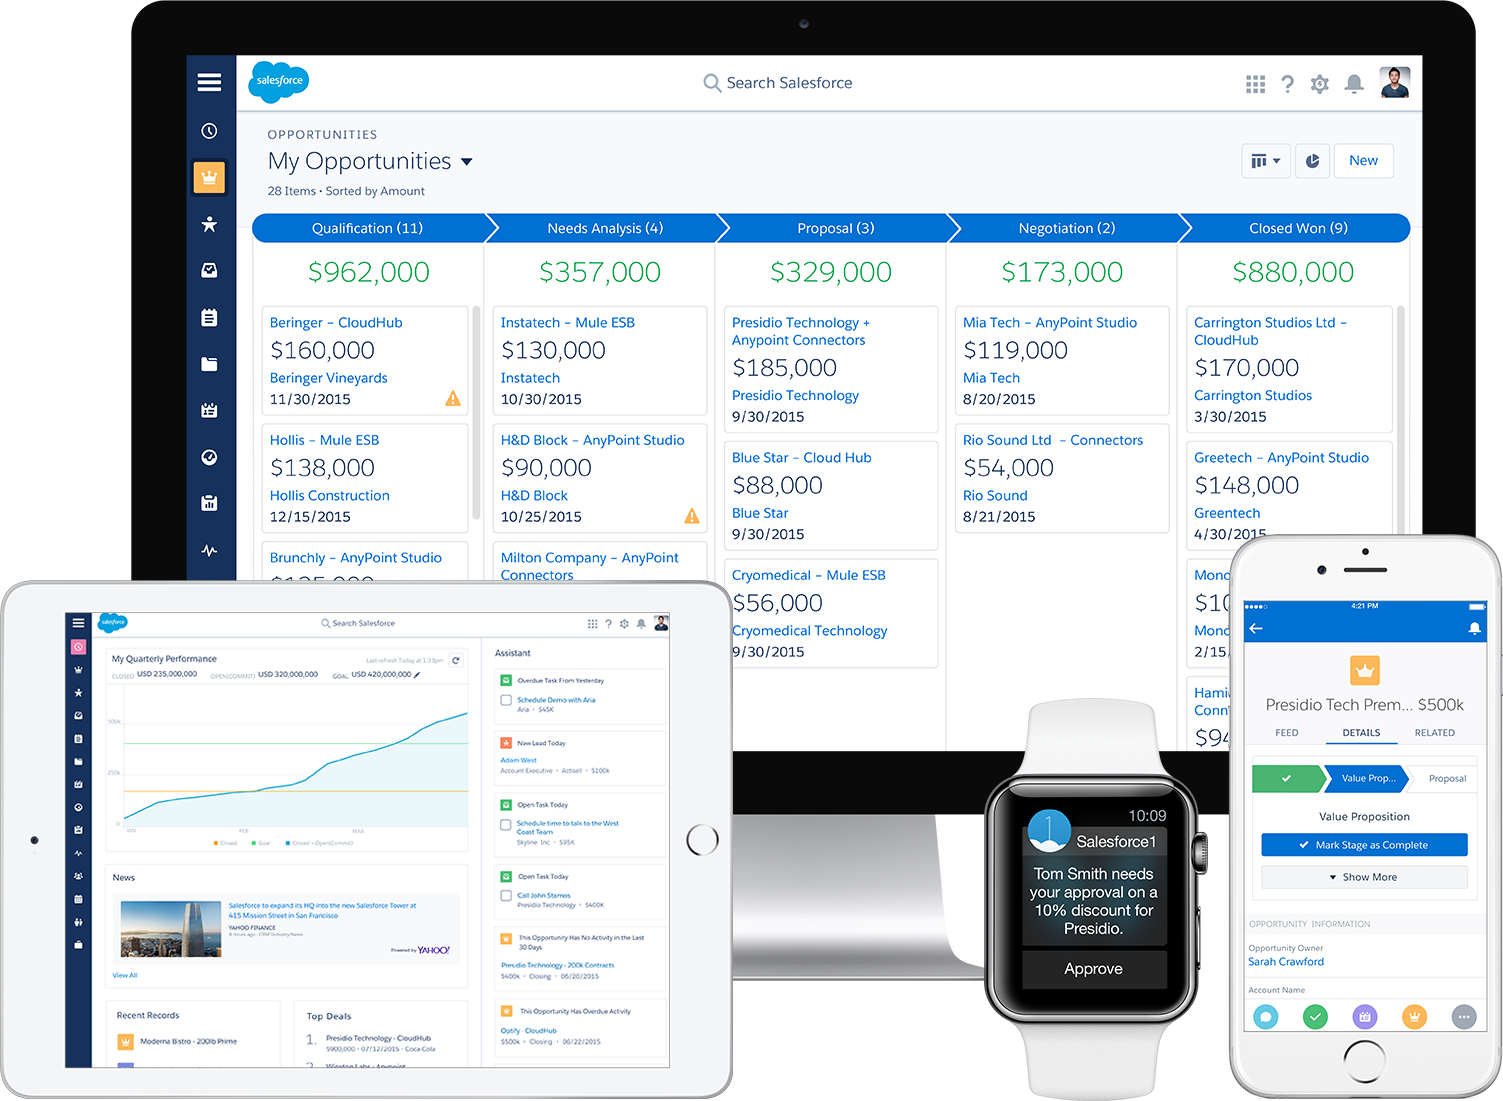 How salesforce will look with it's new UI on different devices